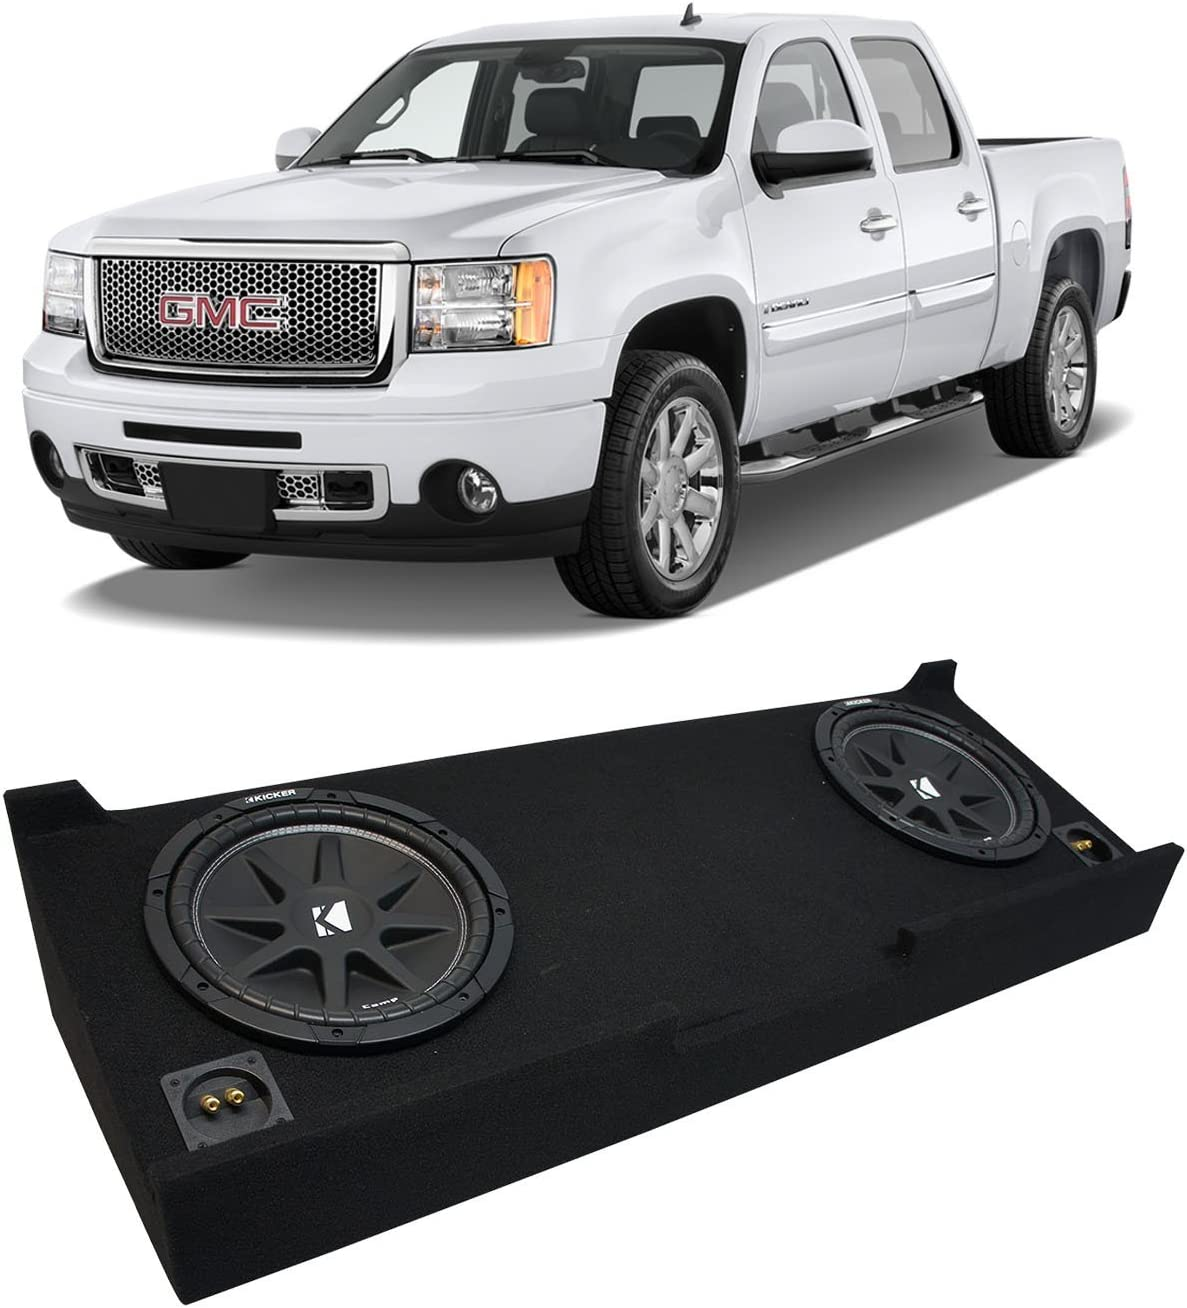 Compatible with Chevy Silverado or GMC Sierra Full Size Extended Cab Truck 2007-2013 Single 10 Subwoofer Sub Box Speaker Enclosure